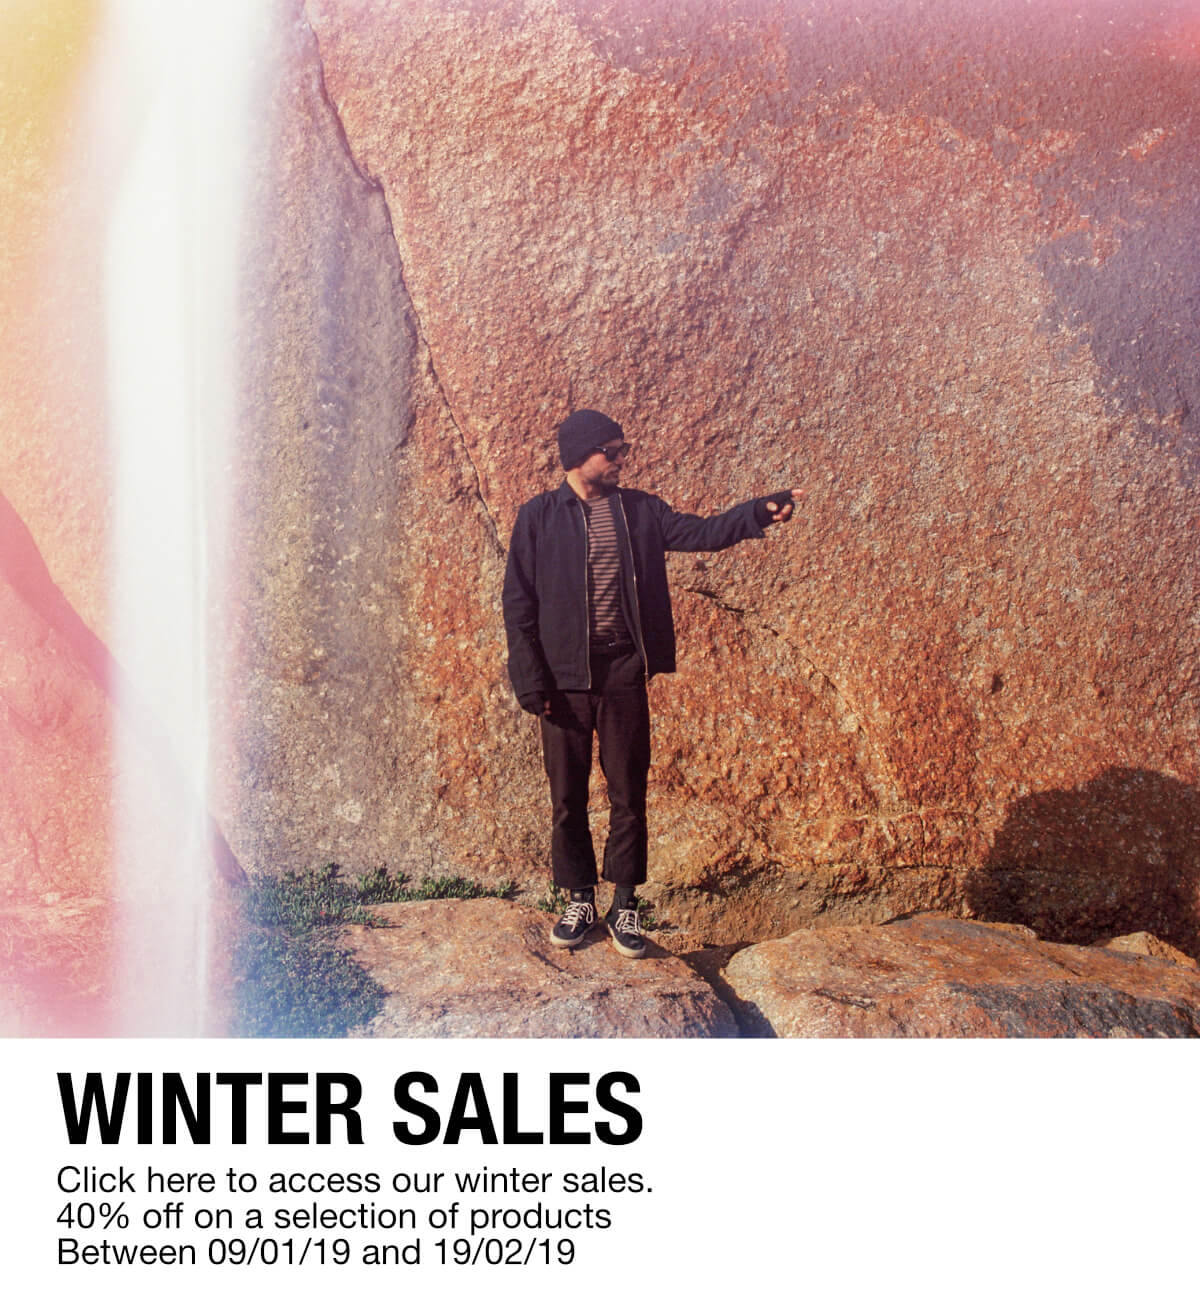 GLOBE winter sales 40% off